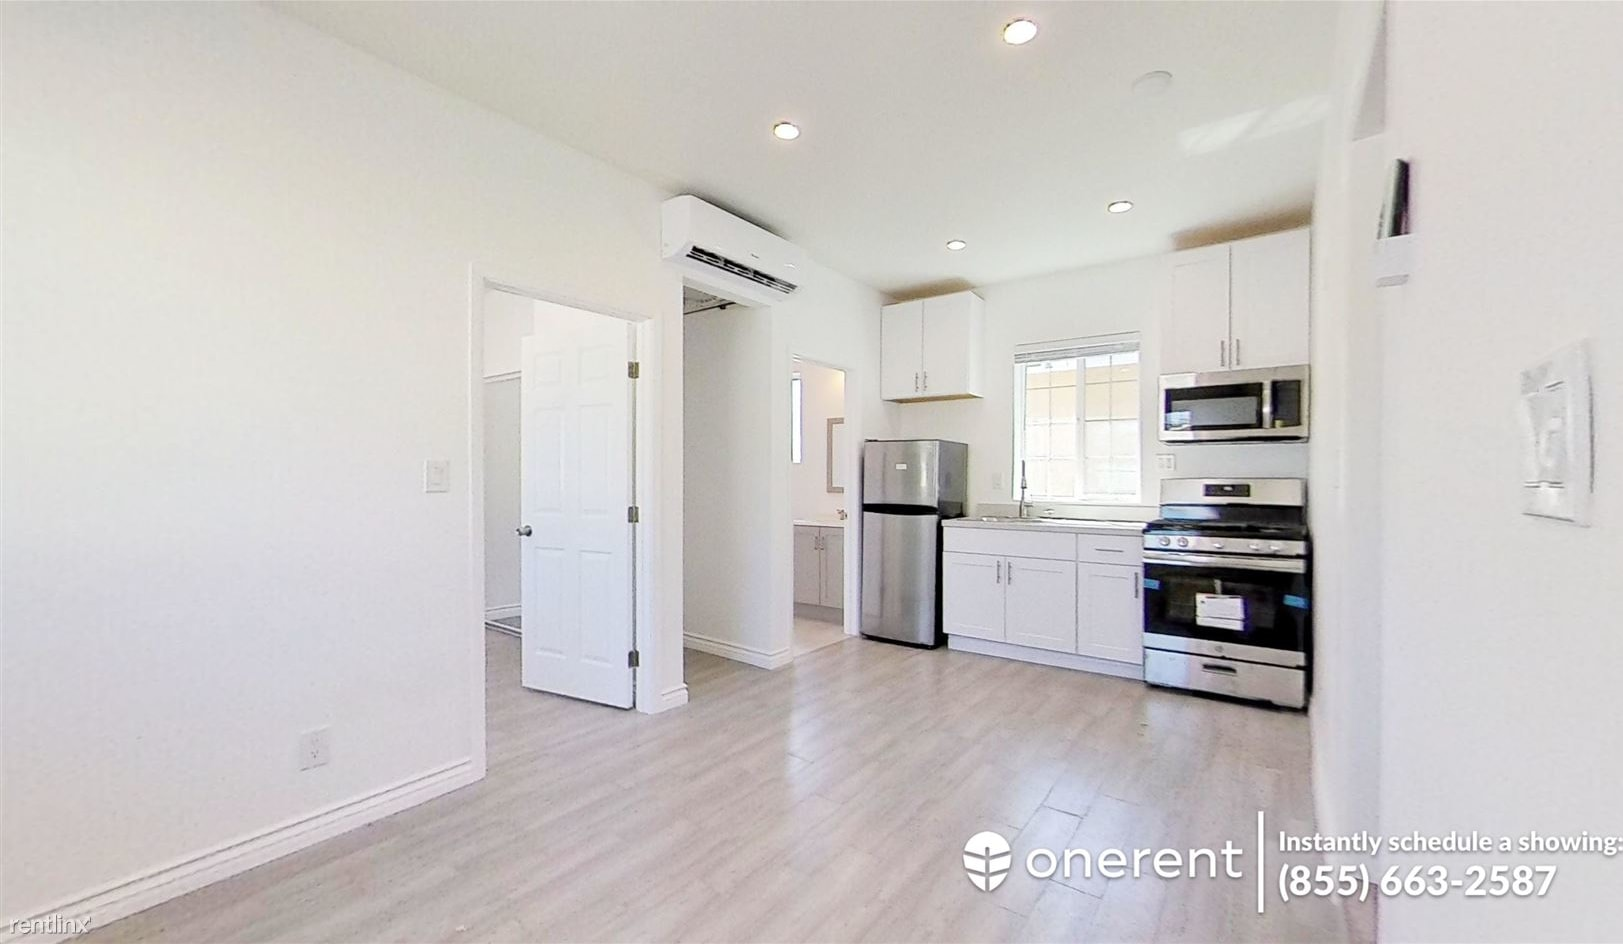 20 Best Apartments In San Fernando, CA (with pictures)!